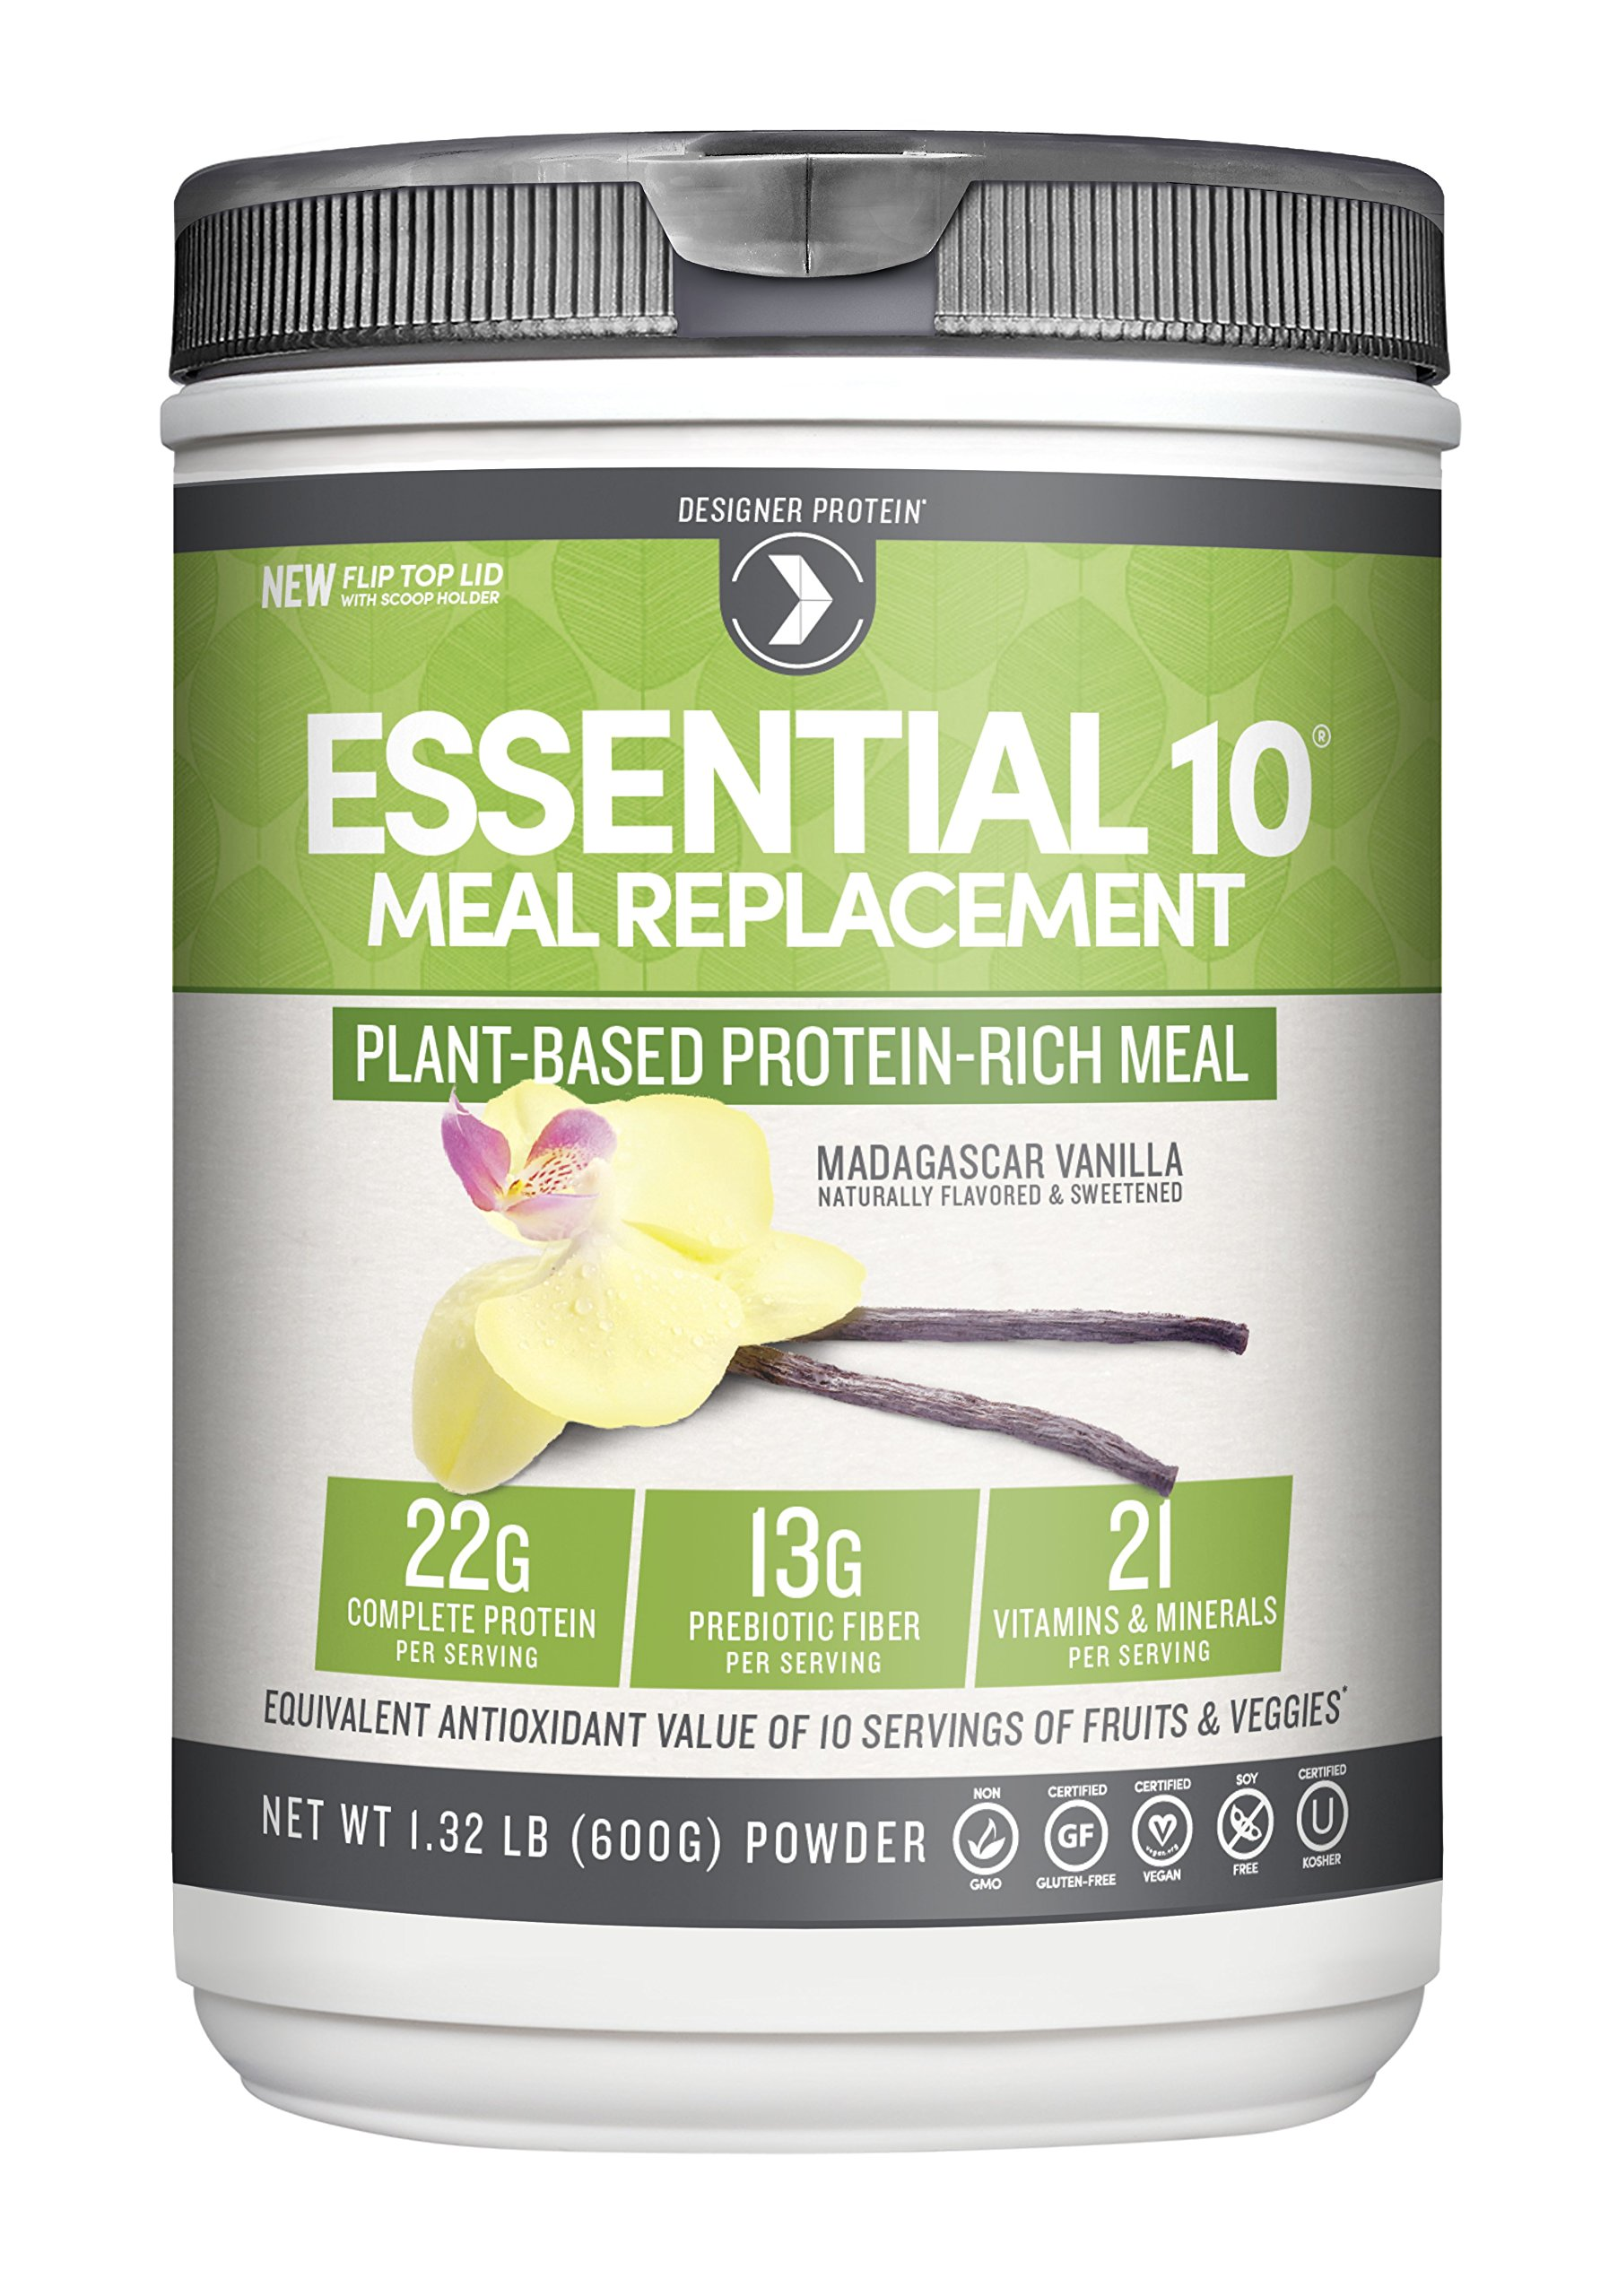 Designer Protein Essential 10 100% Plant-Based Meal Replacement, Madagascar Vanilla, 1.32 Pound